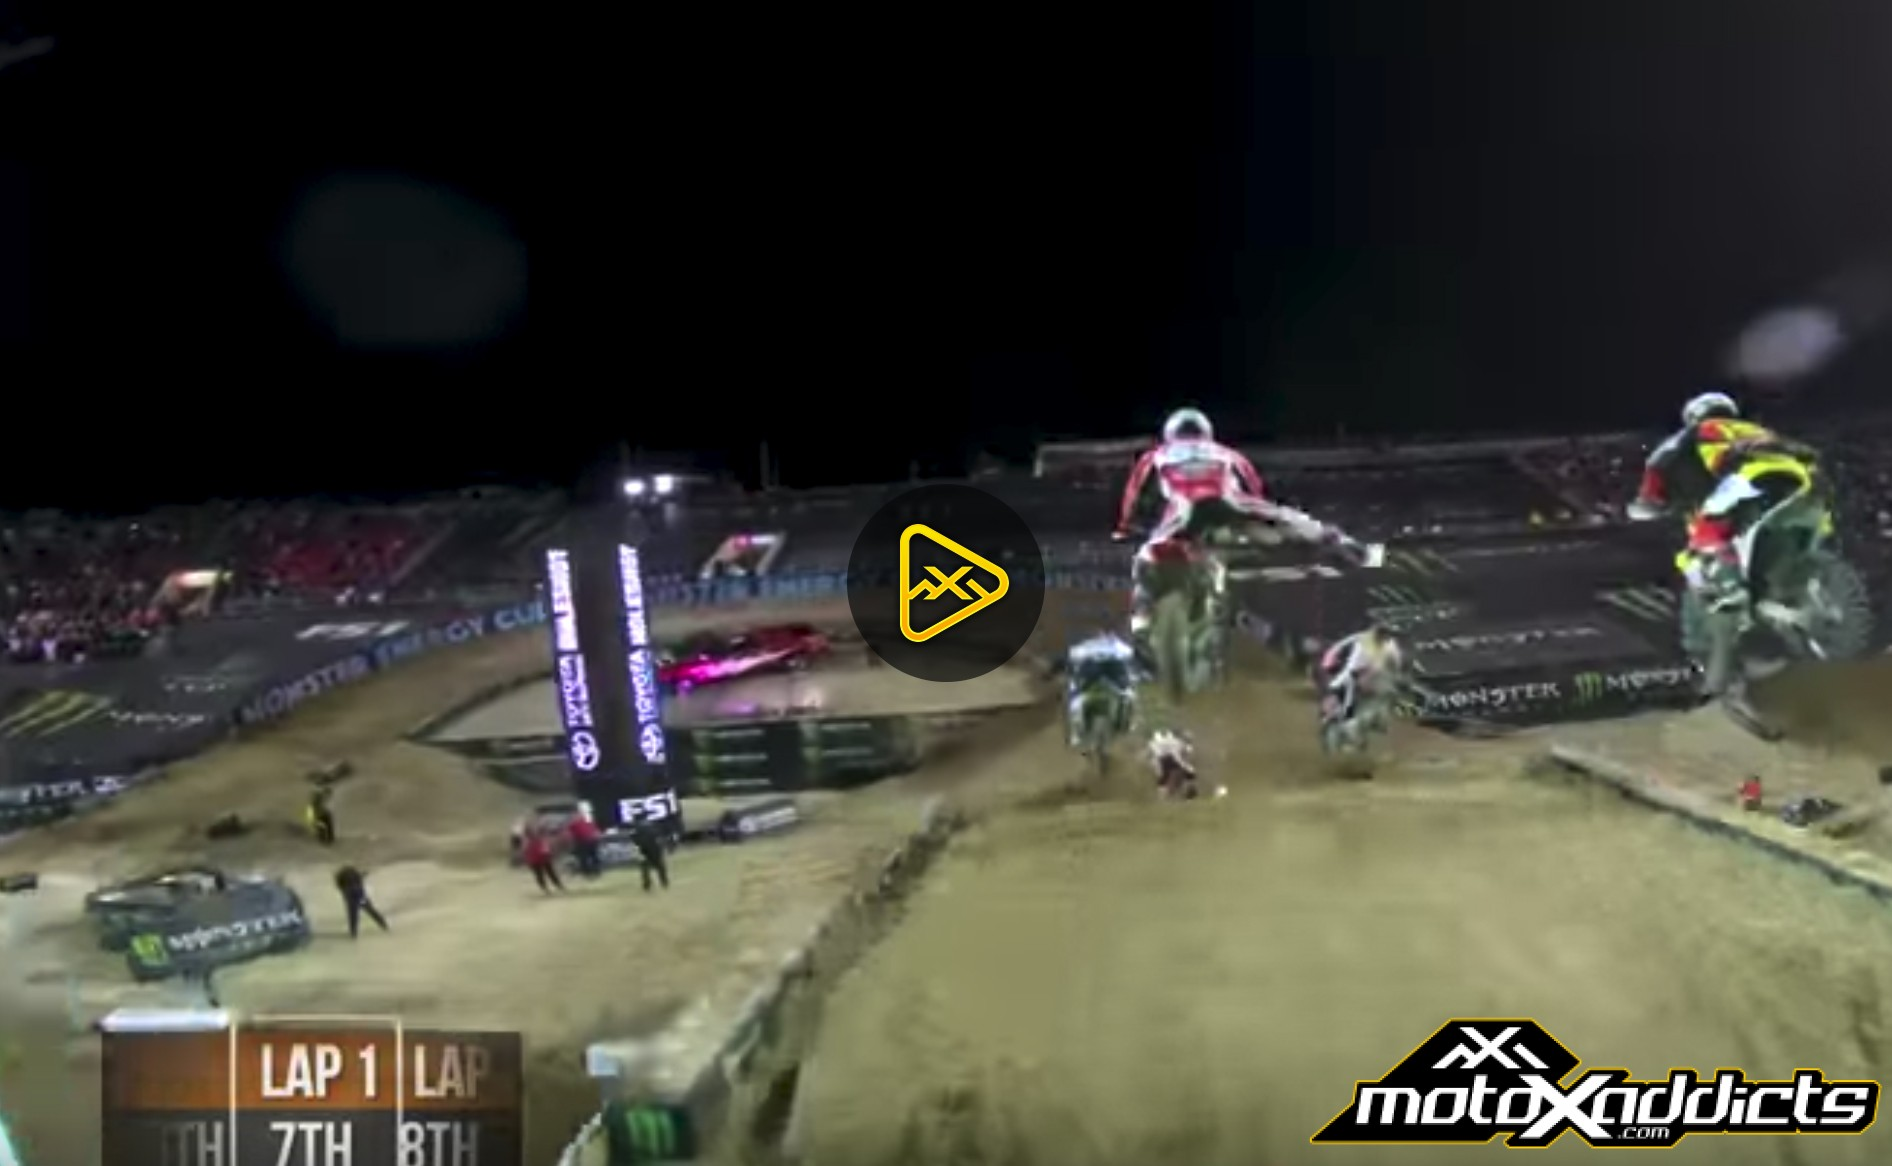 Helmet Cam: Jordon Smith Main Event at Monster Energy Cup